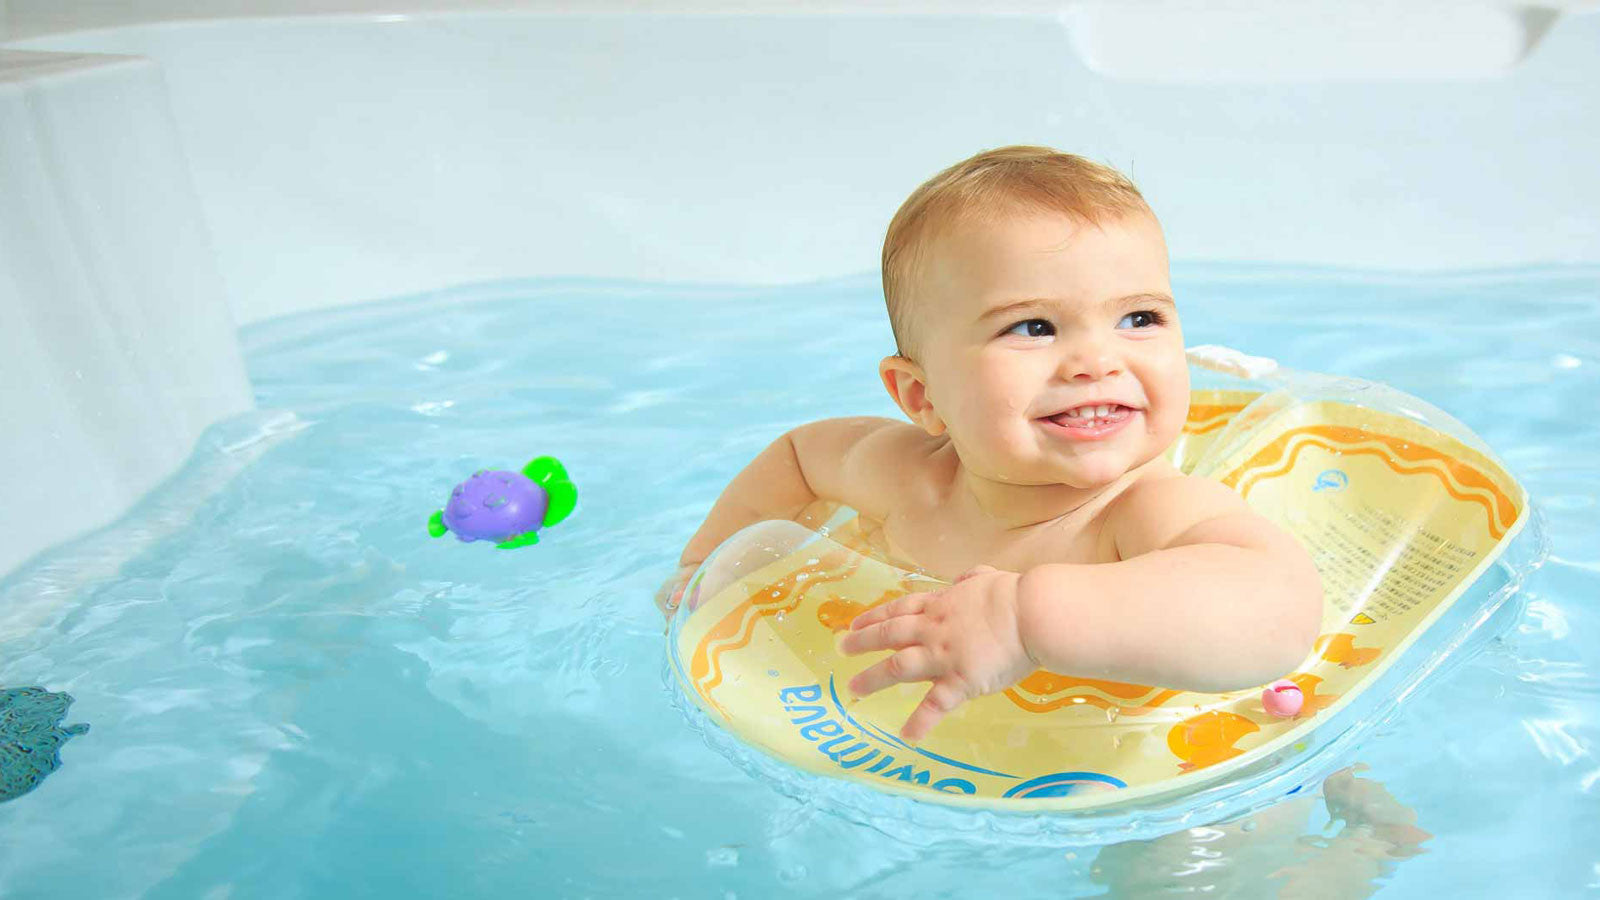 swim products. Swim floats baby. Baby swim float. Body ring. Learn to swim products. Swim products.